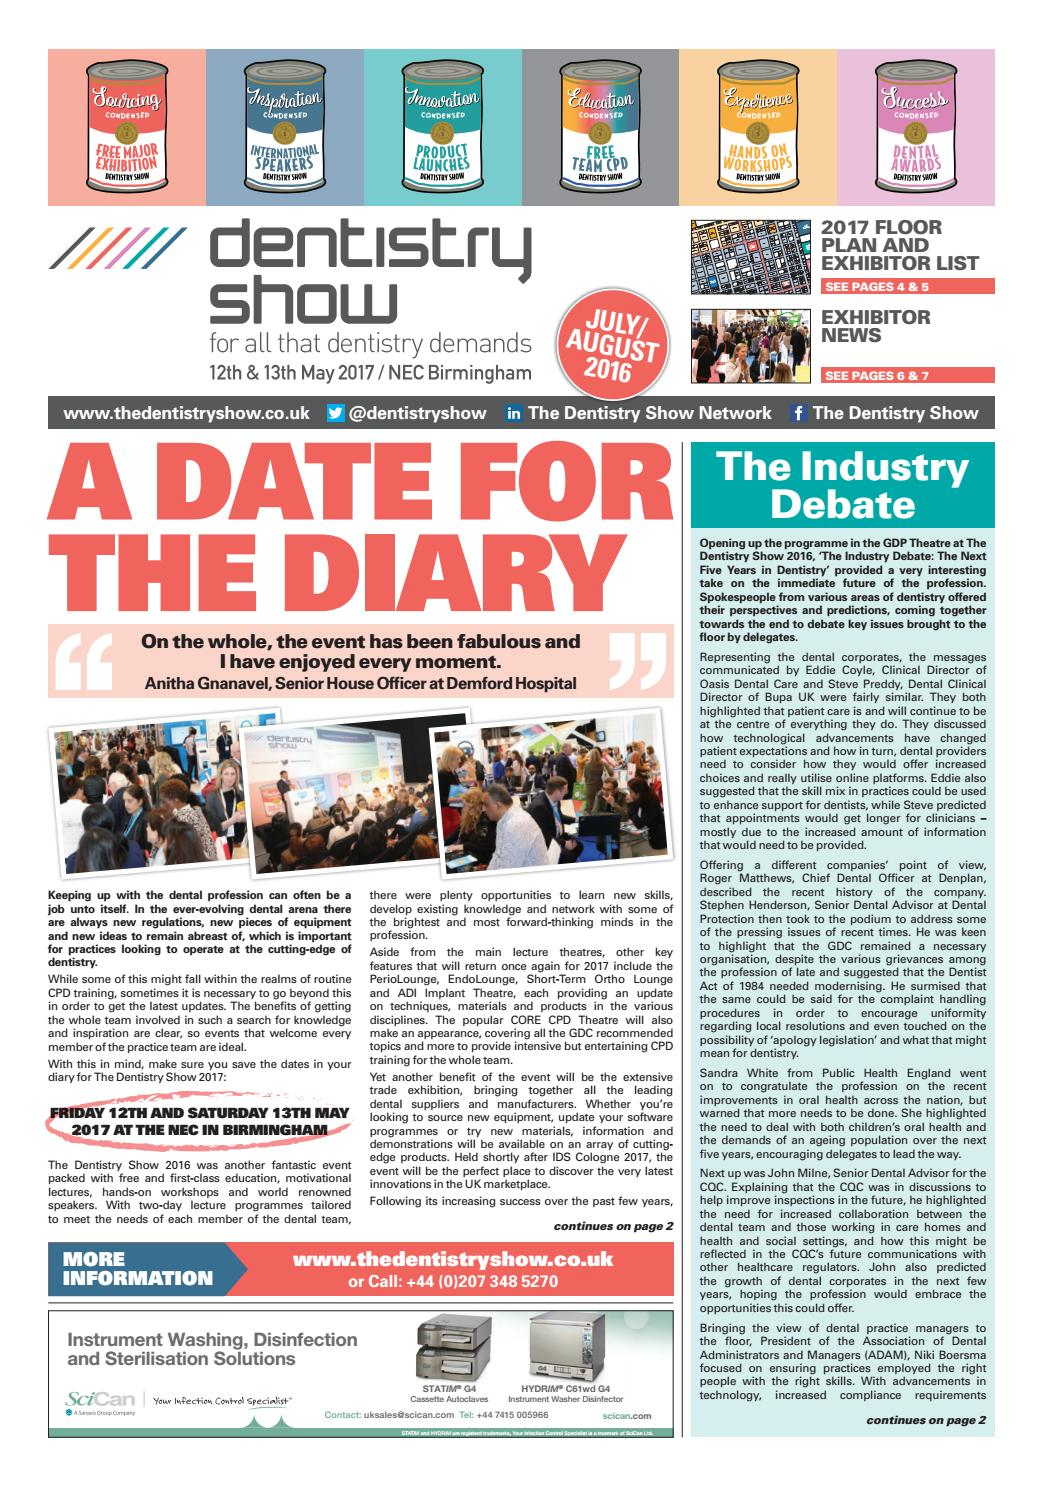 The dentistry show newspaper julyaugust 2016 by closerstill media the dentistry show newspaper julyaugust 2016 by closerstill media issuu malvernweather Choice Image